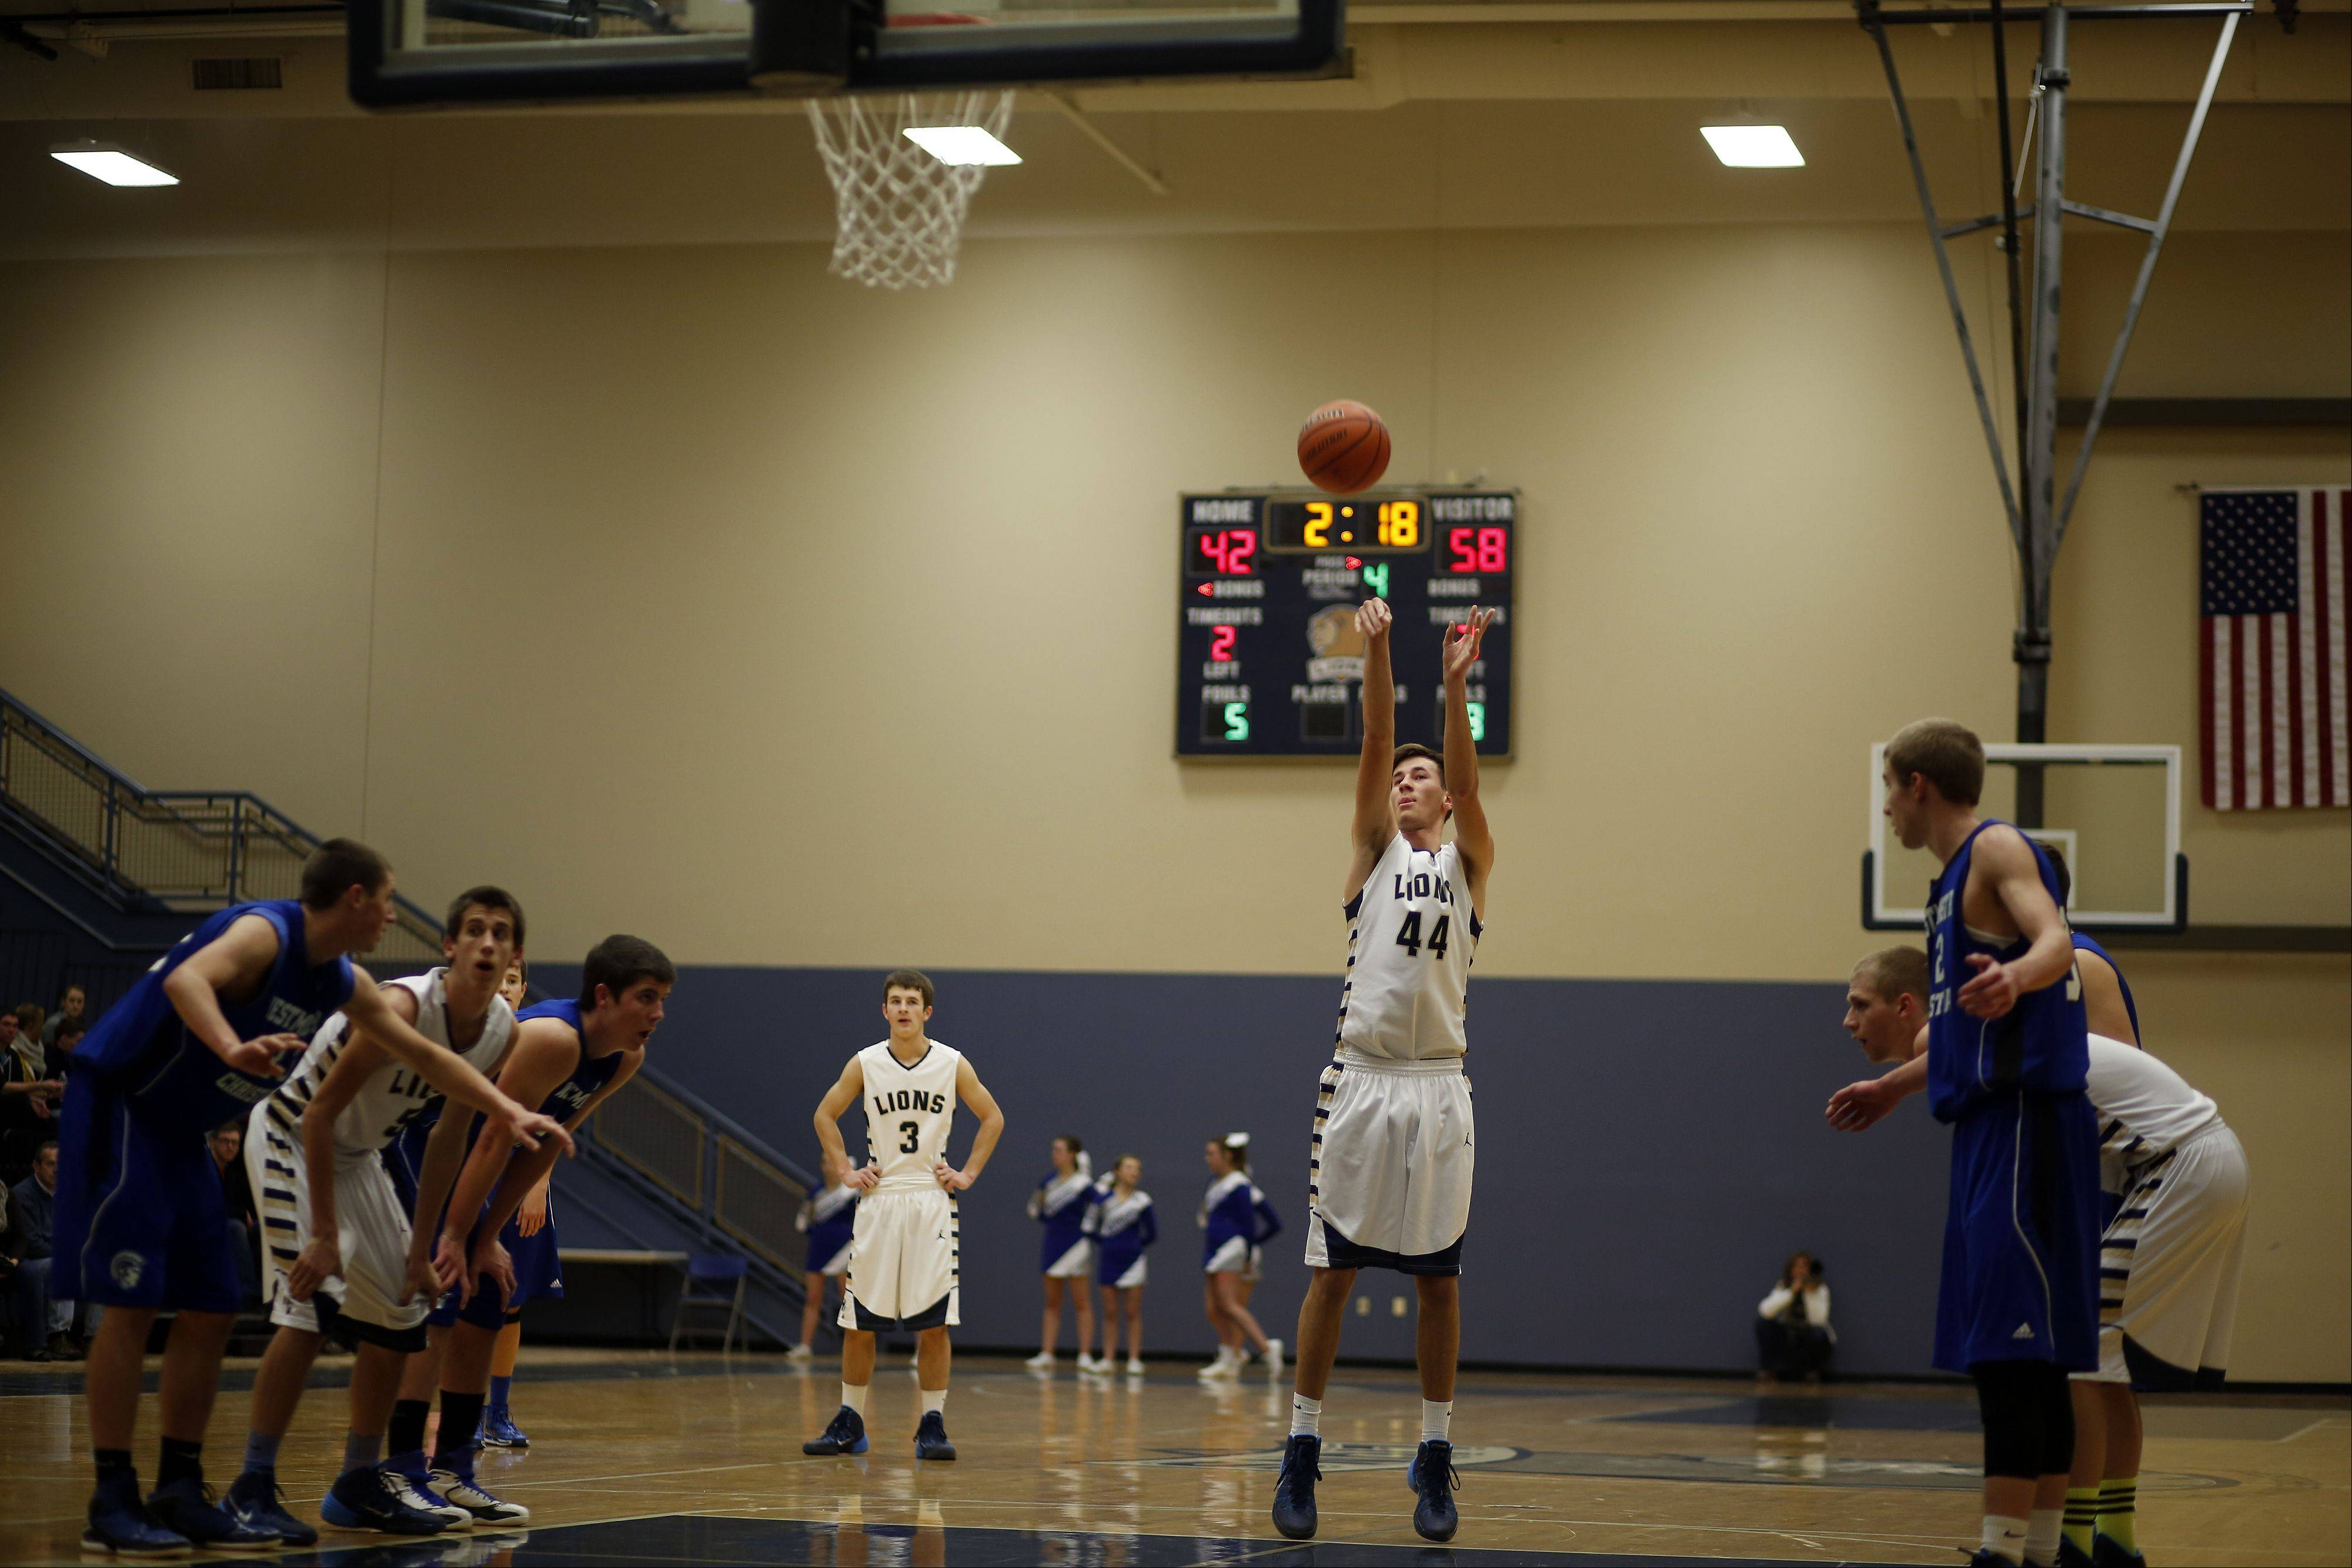 Images from the Westminster Christian vs. Harvest Christian boys basketball game Friday, January 17, 2014.